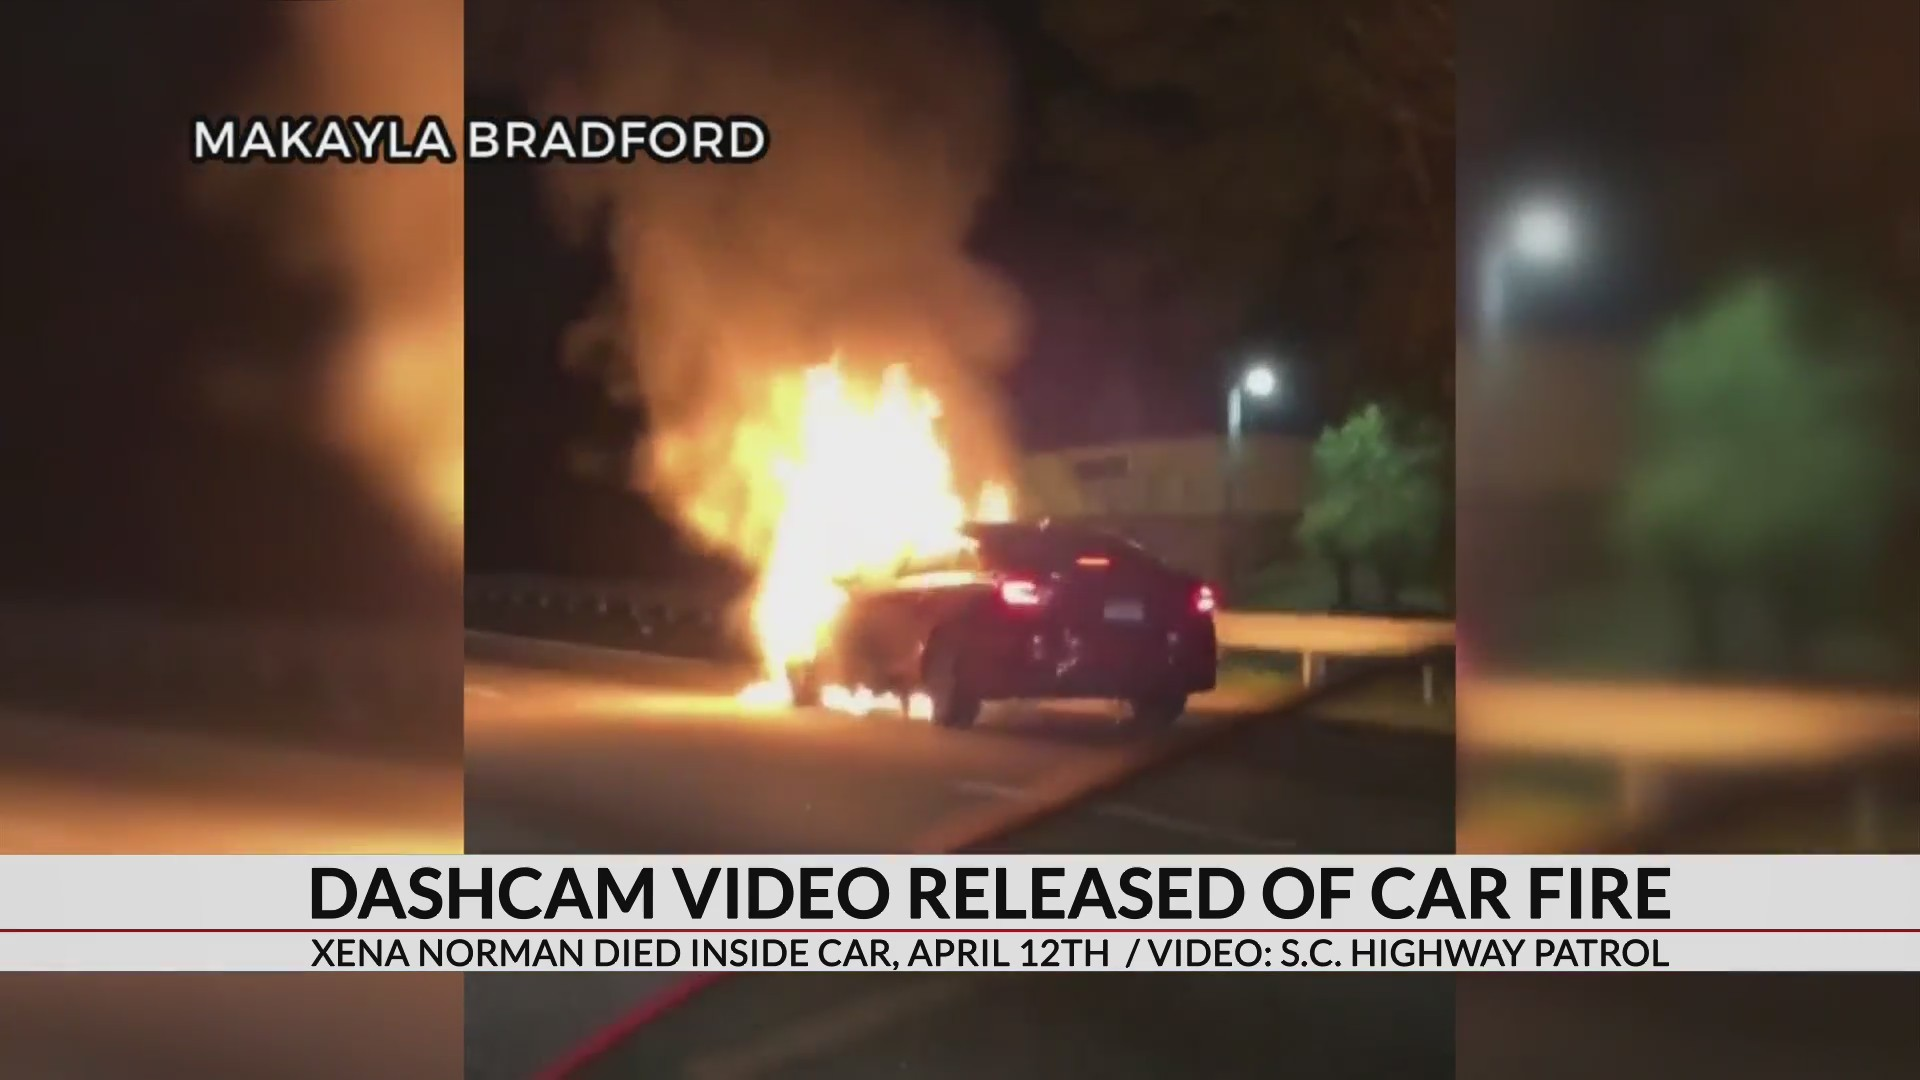 Dash cam video shows moments leading up to death of 1-year-old girl who died in burning car